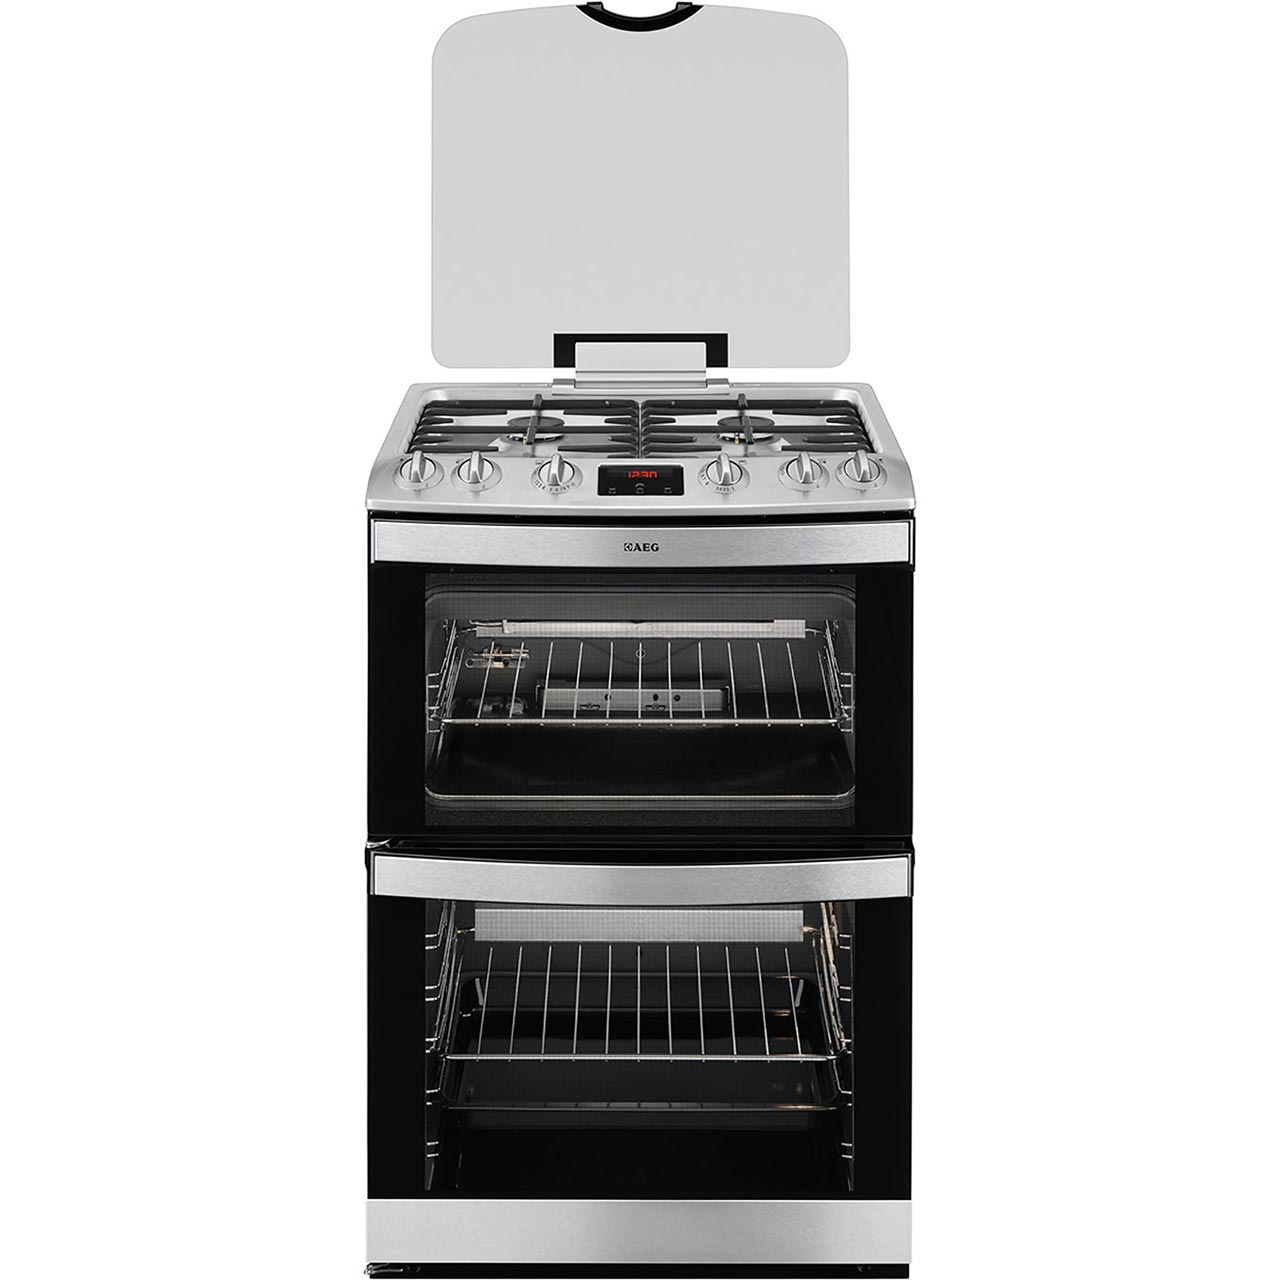 AEG 17166GMMN Free Standing Cooker in Stainless Steel